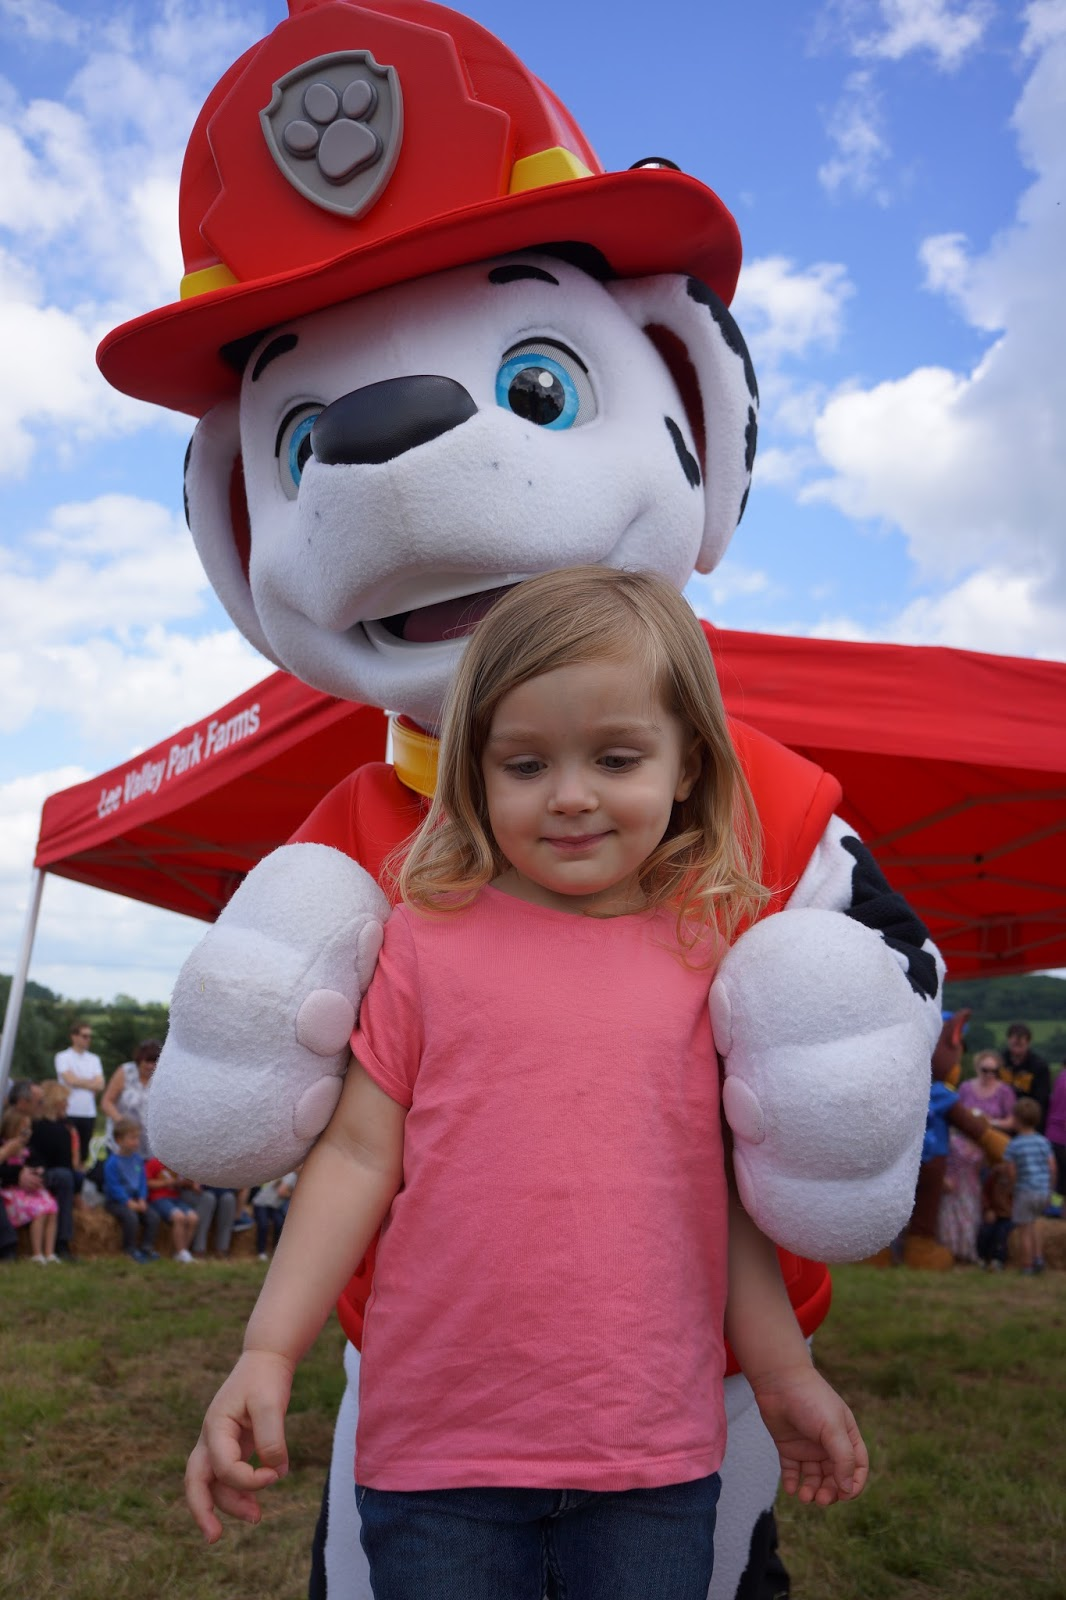 toddler in front of paw patrol marshall mascot